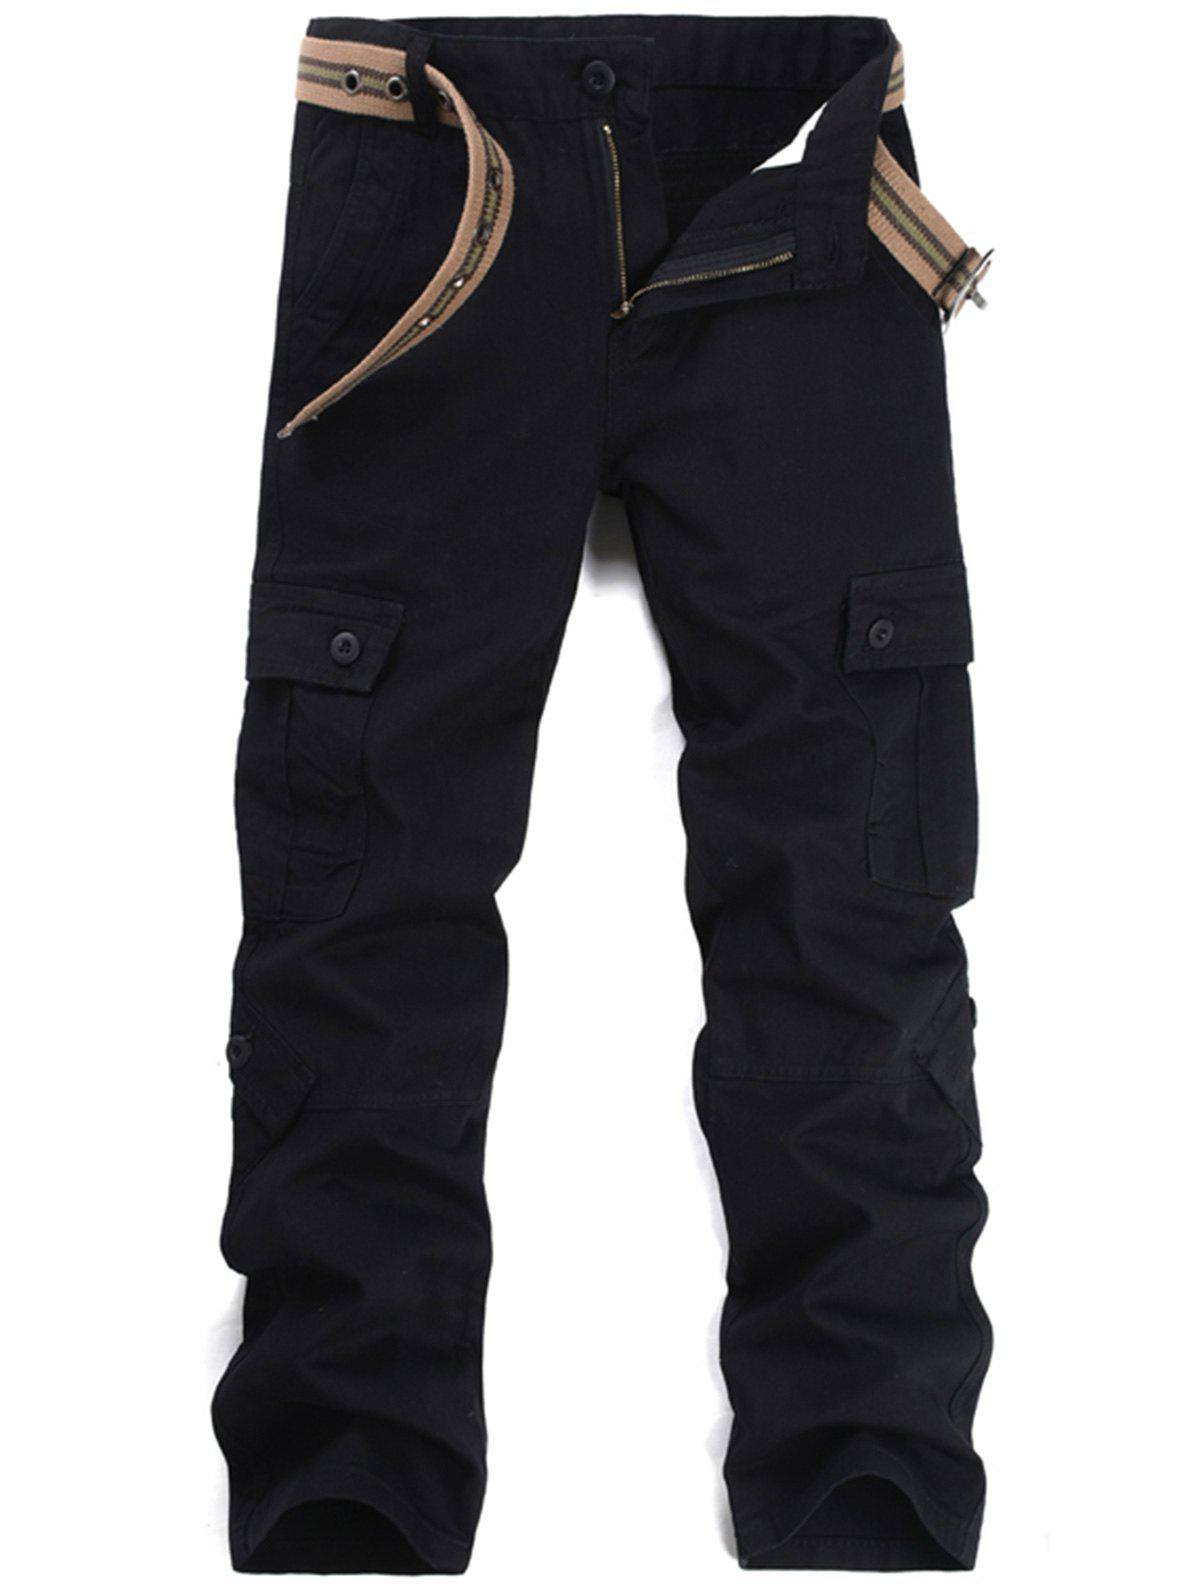 Pockets Straight Leg Cargo Pants - BLACK 38